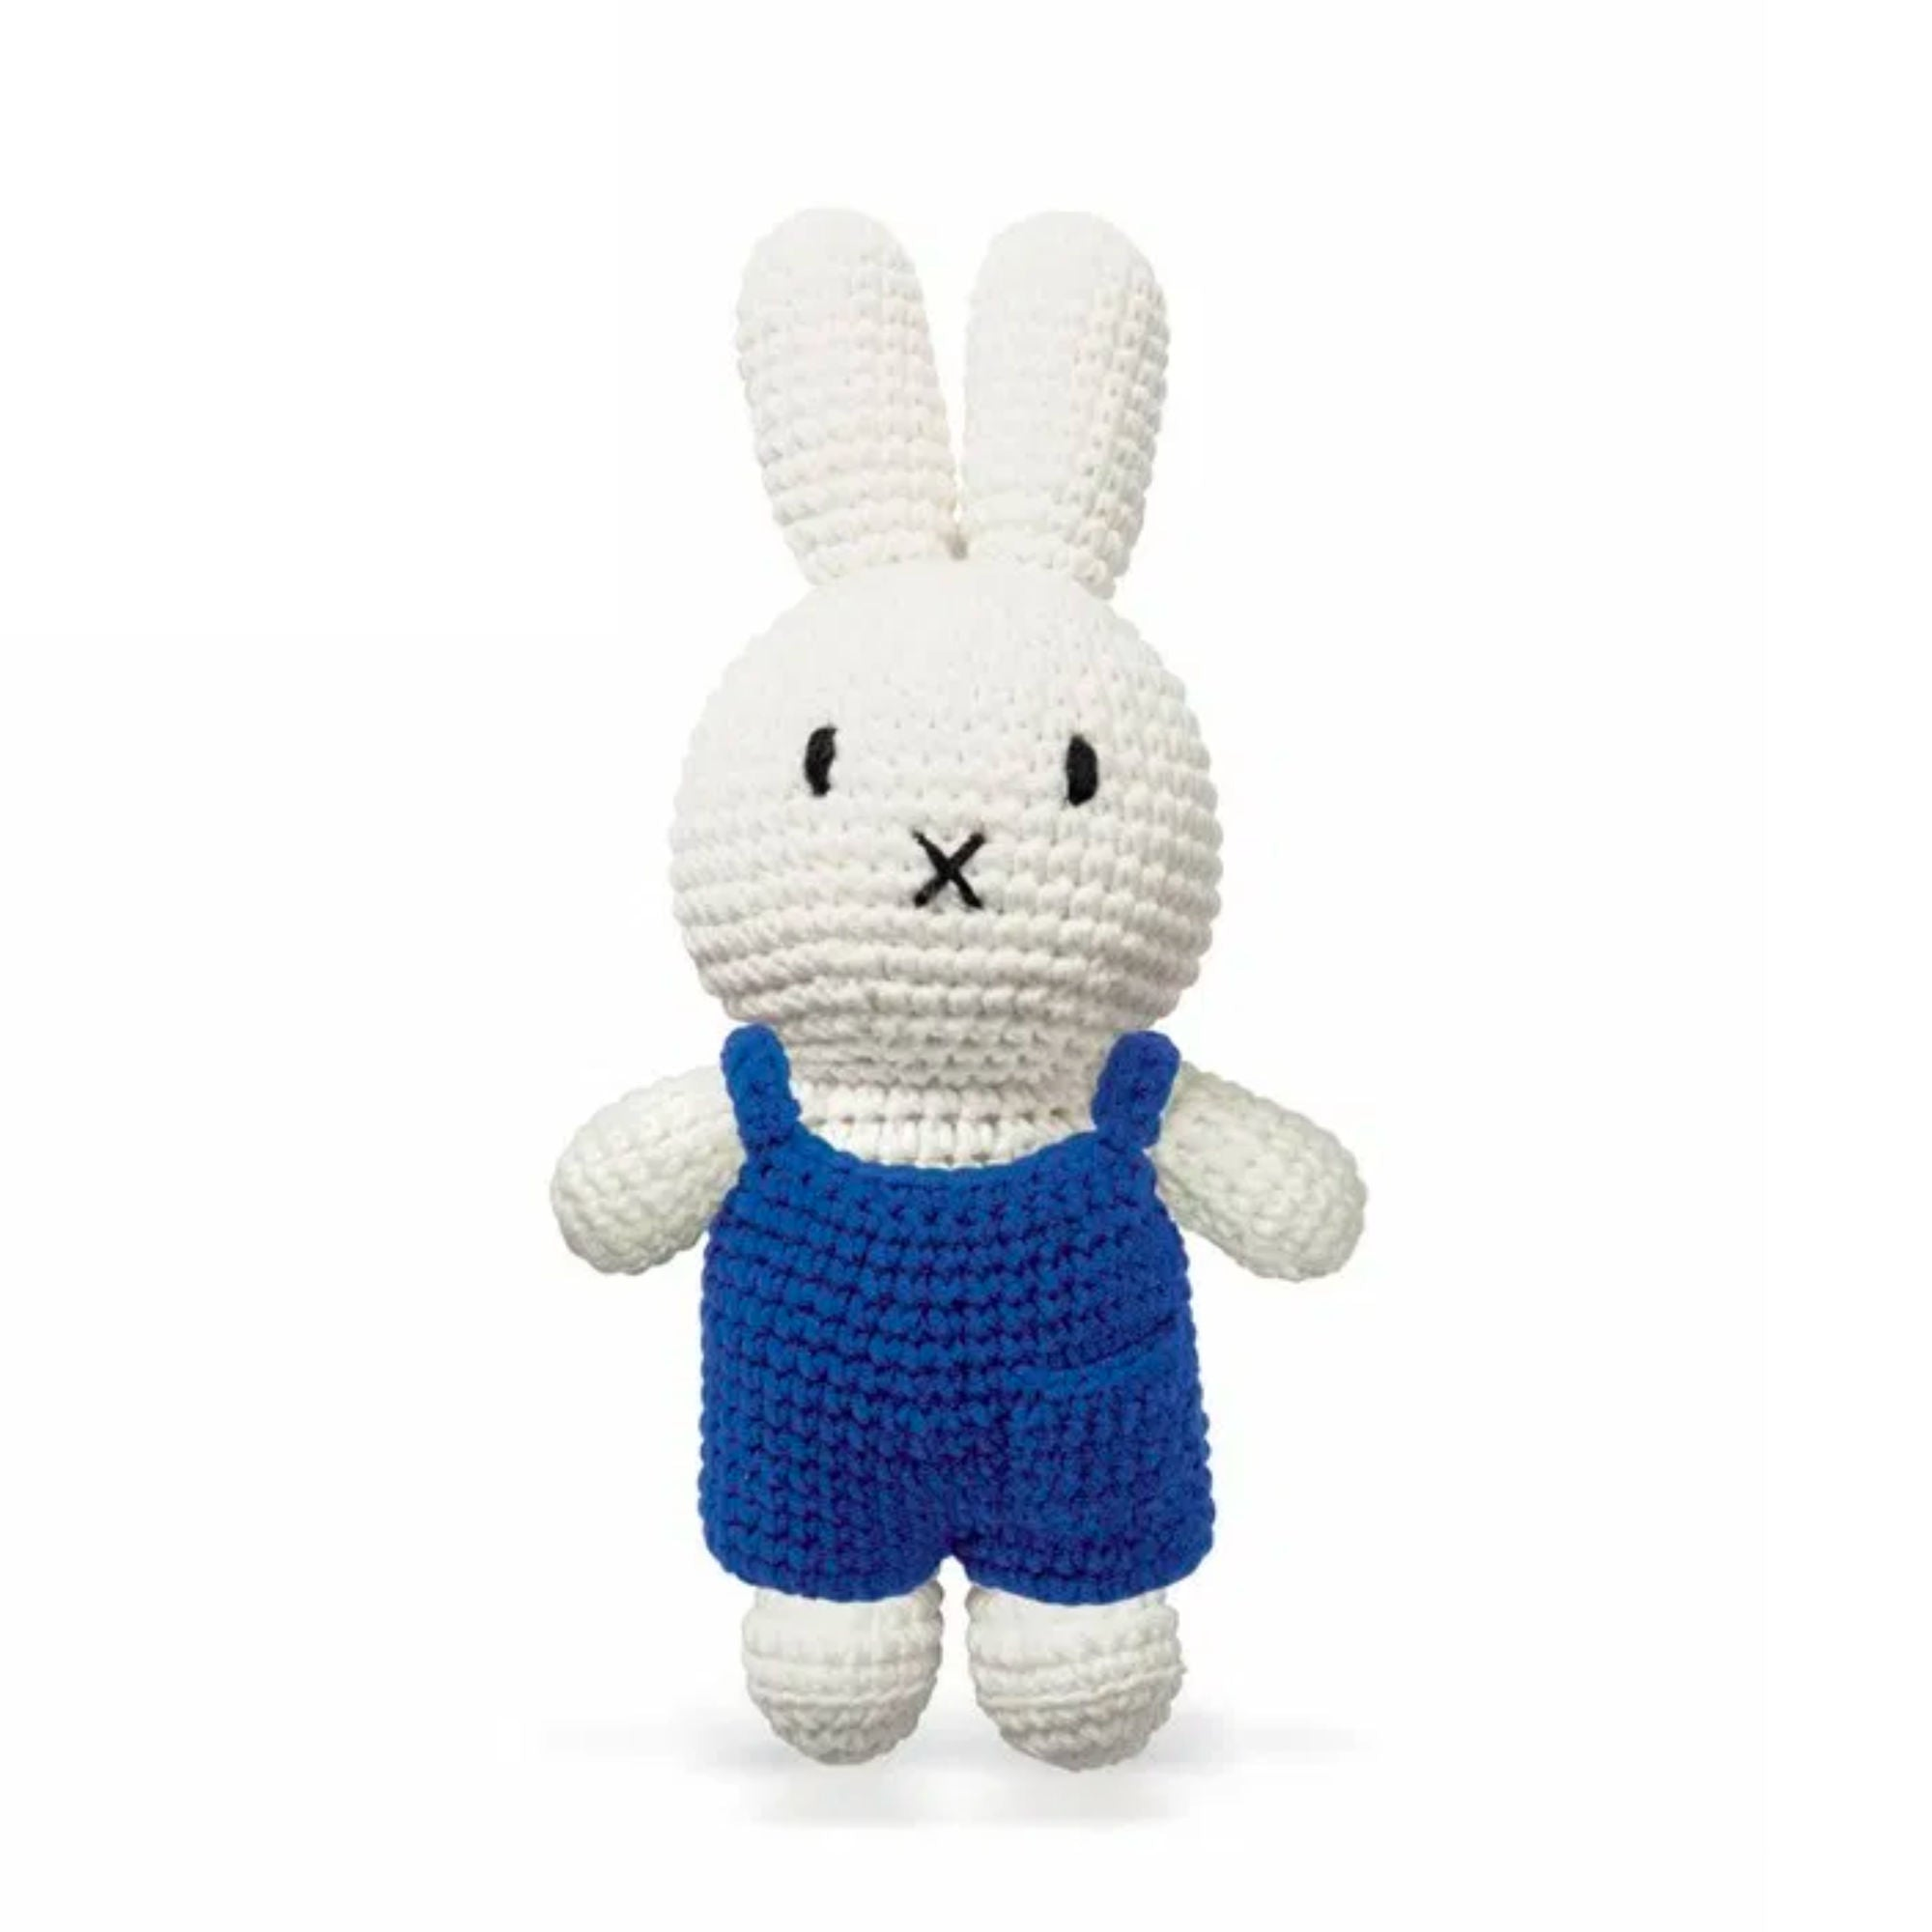 Just Dutch handmade doll, Miffy and her blue overall